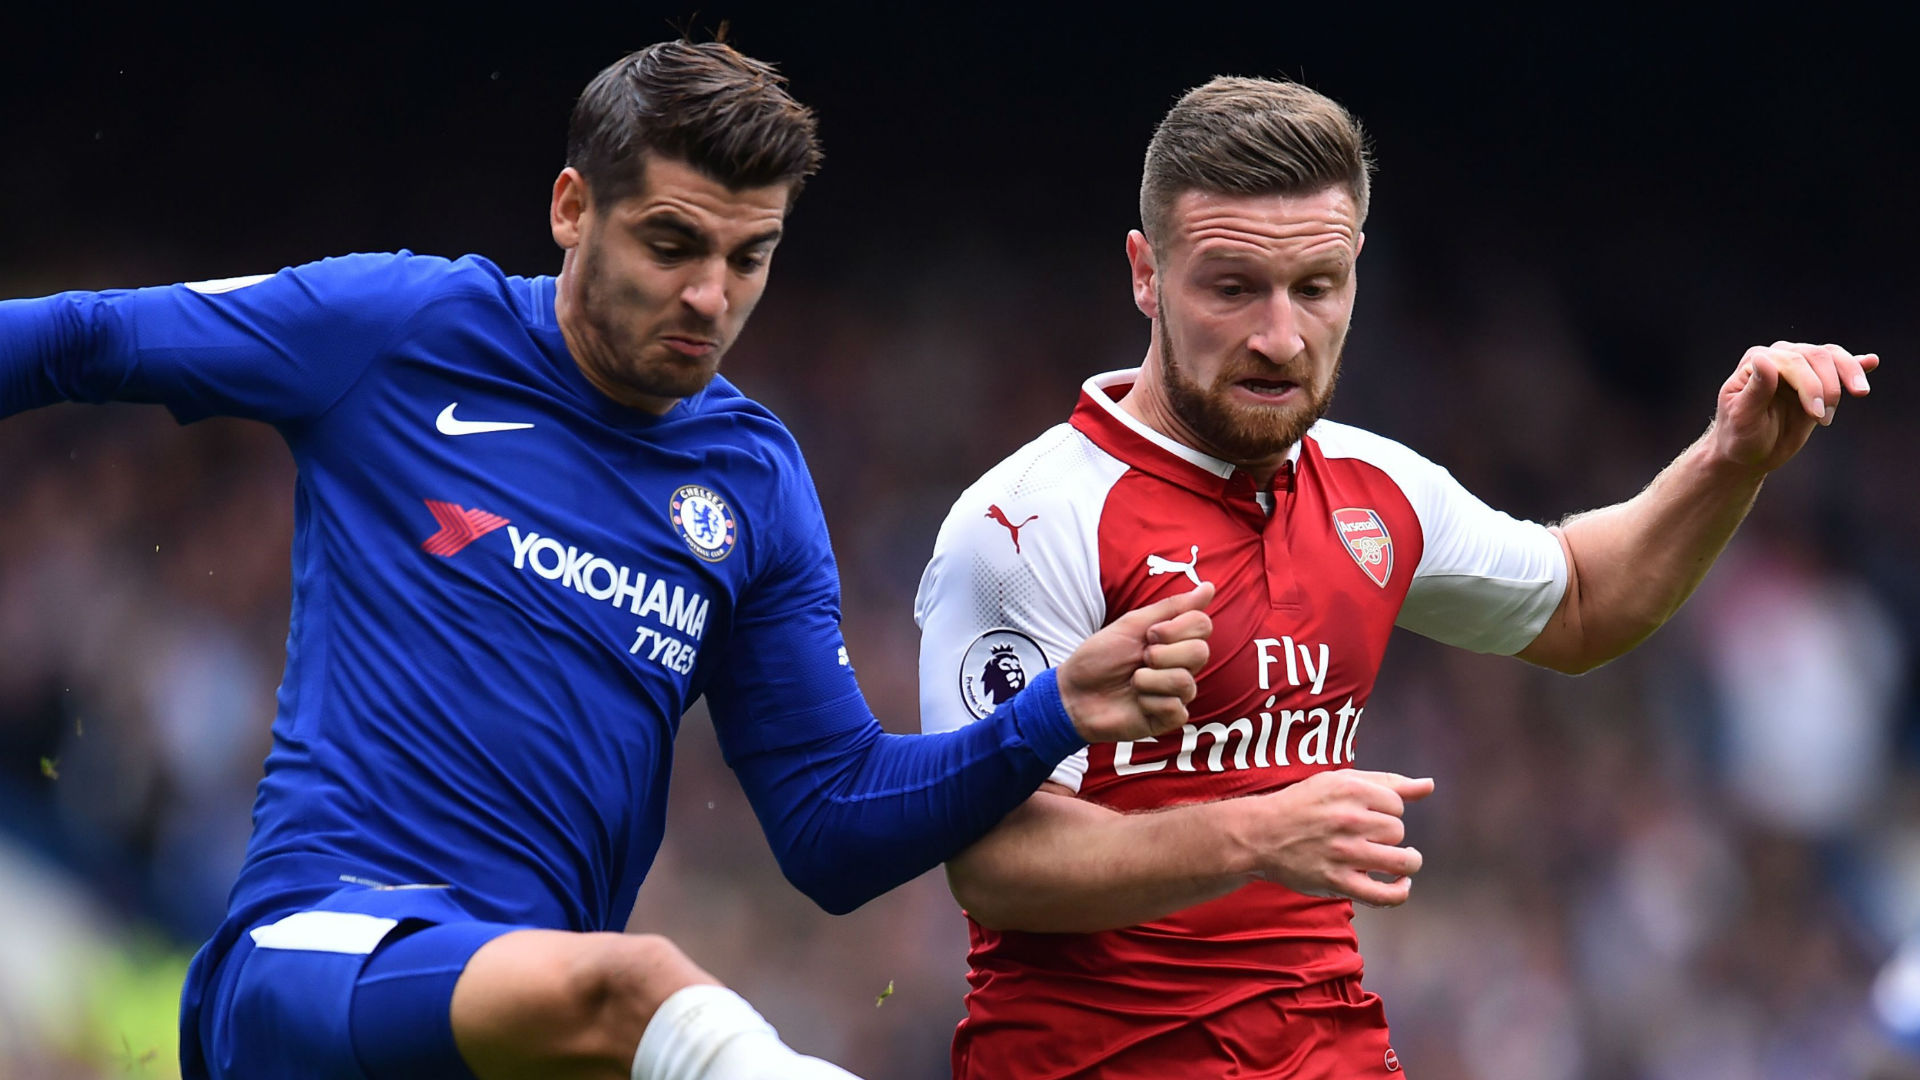 Arsenal vs Chelsea: TV channel, stream, kick-off time, odds & match preview